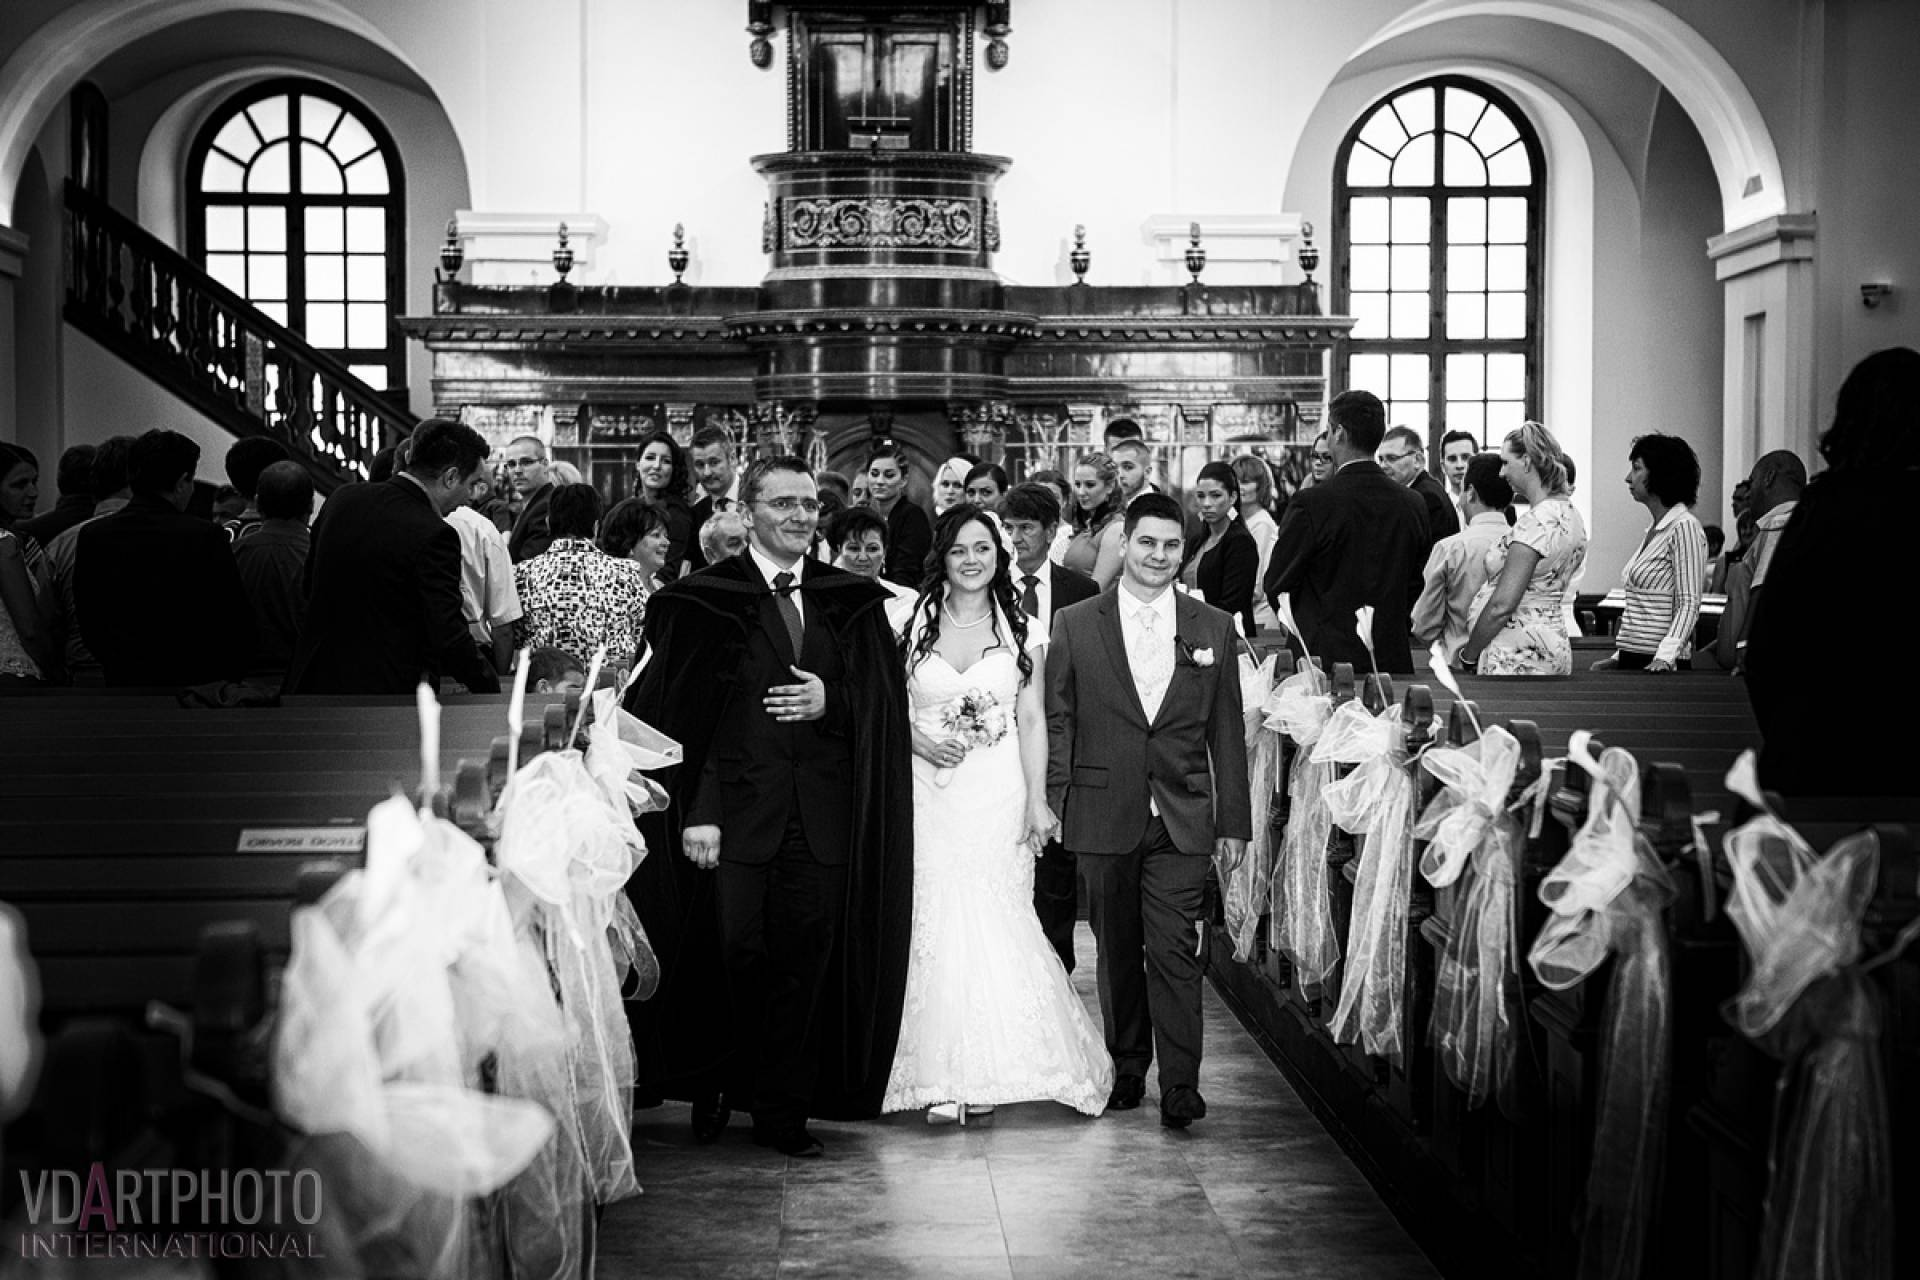 201509/Heni_Jani_wedding_retus00015_1_jpg.jpg -